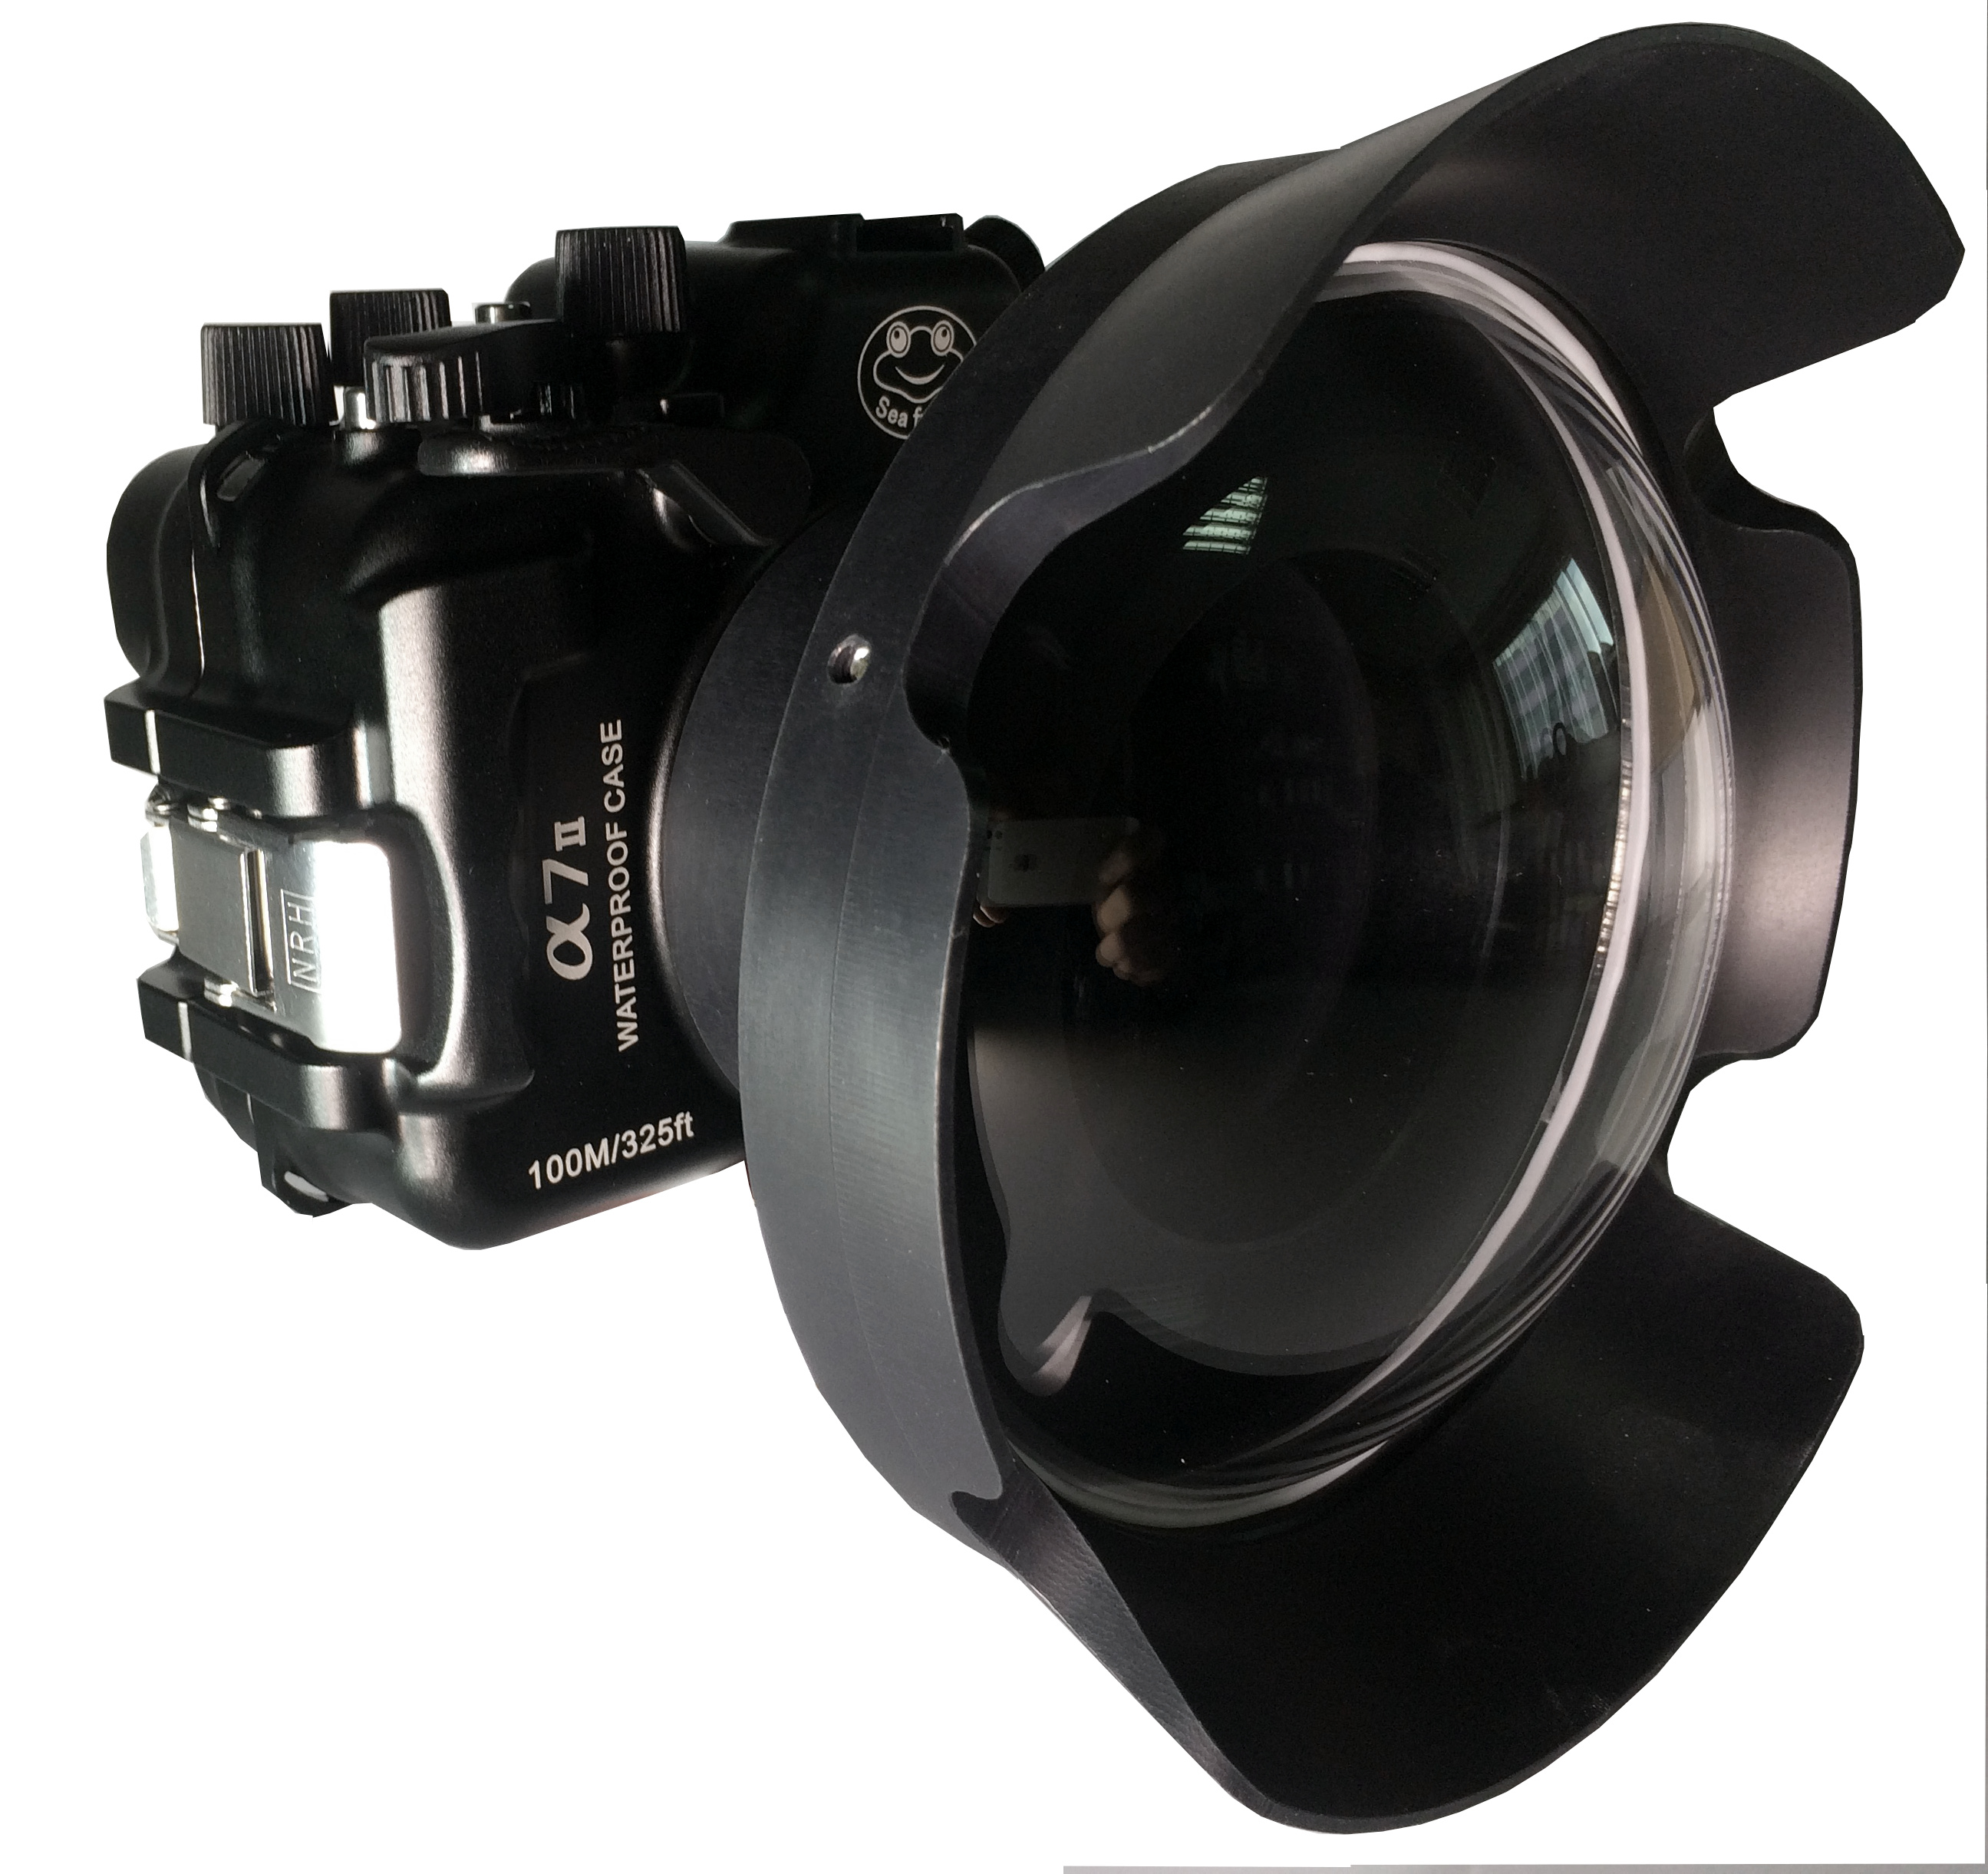 Sea Frogs A7 II alluminium Kit с портом Wide Dome Port 170 + Lens Hood 170  для Sony Alpha A7II